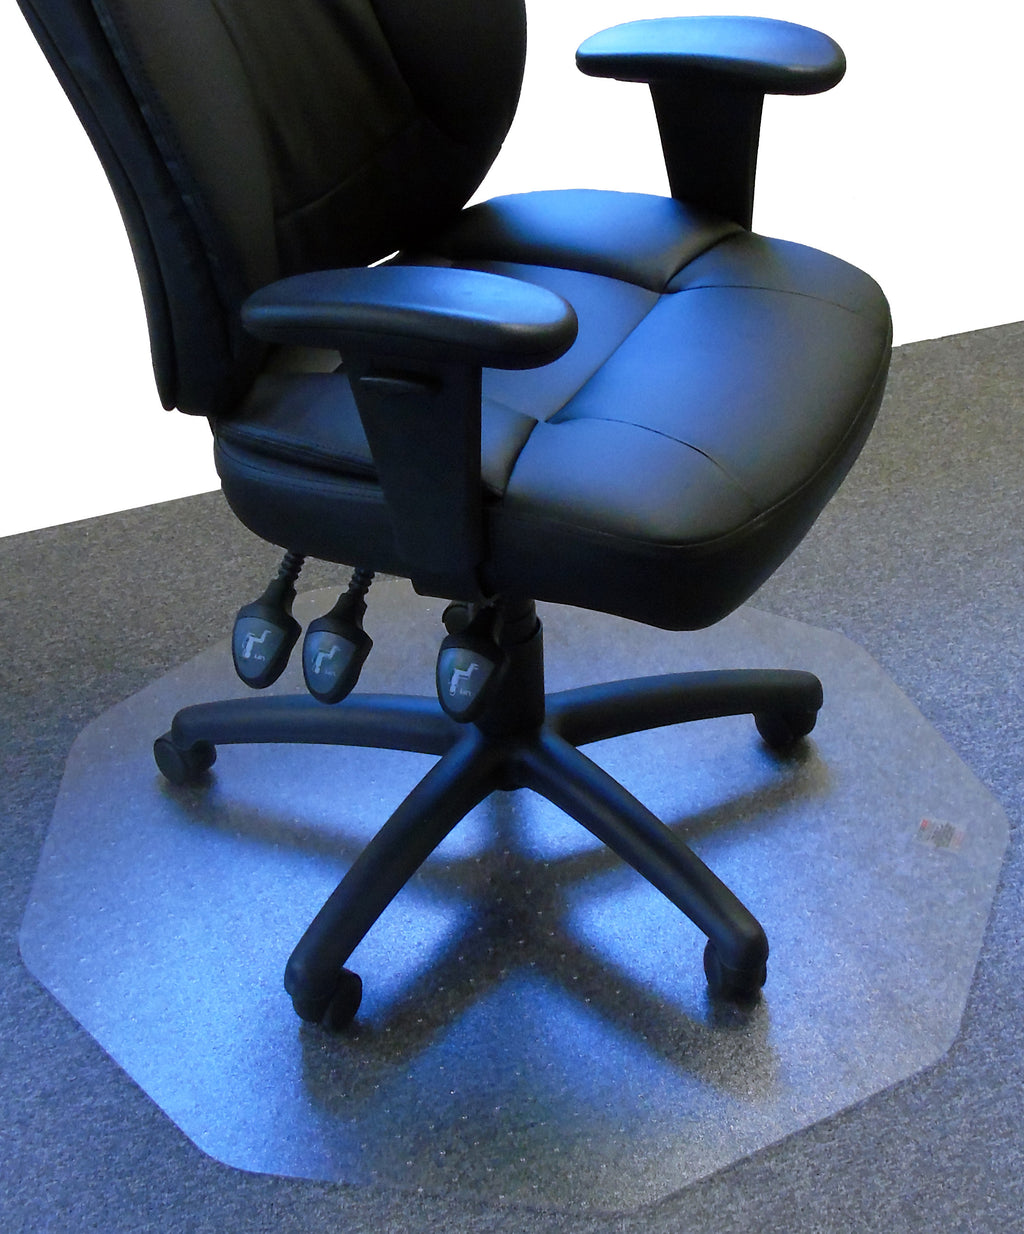 "Cleartex 9Mat Ultimat Polycarbonate Chair mat for Low & Medium Pile Carpets up to 1/2"", Floor Mats, FloorTexLLC, - ReeceFurniture.com - Free Local Pick Ups: Frankenmuth, MI, Indianapolis, IN, Chicago Ridge, IL, and Detroit, MI"